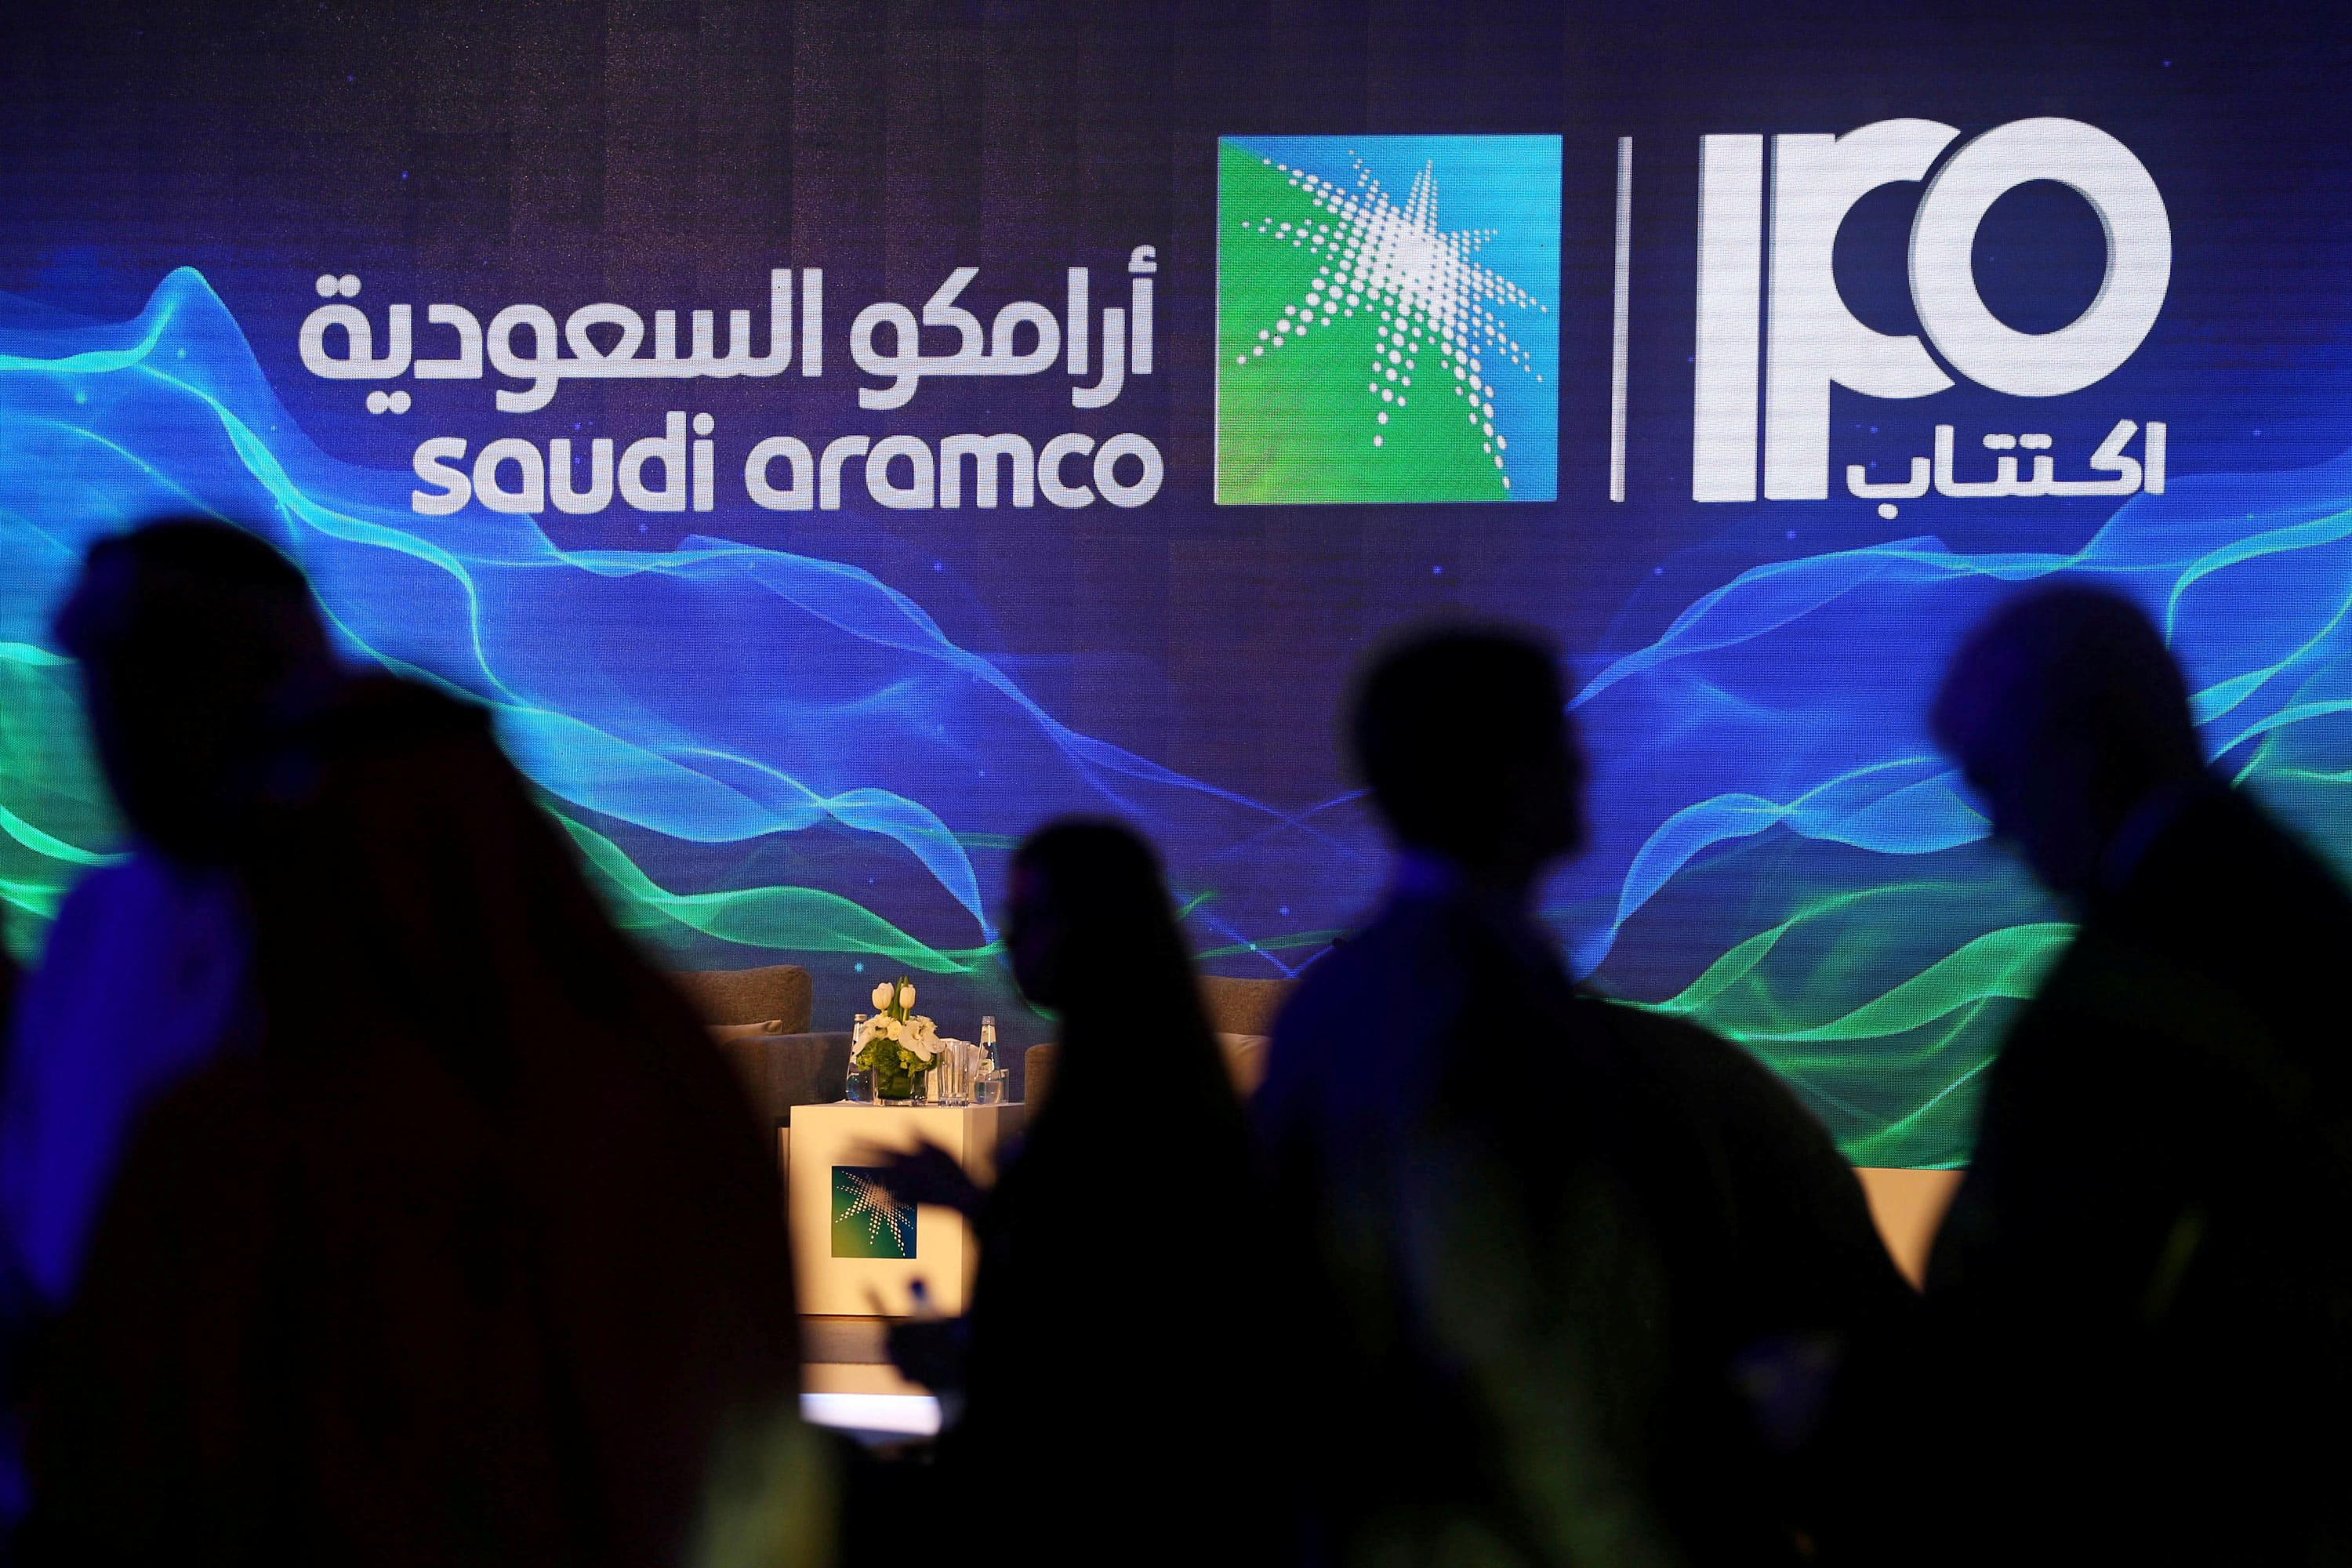 Saudi Aramco will offer less than 1% of shares to individual investors in IPO